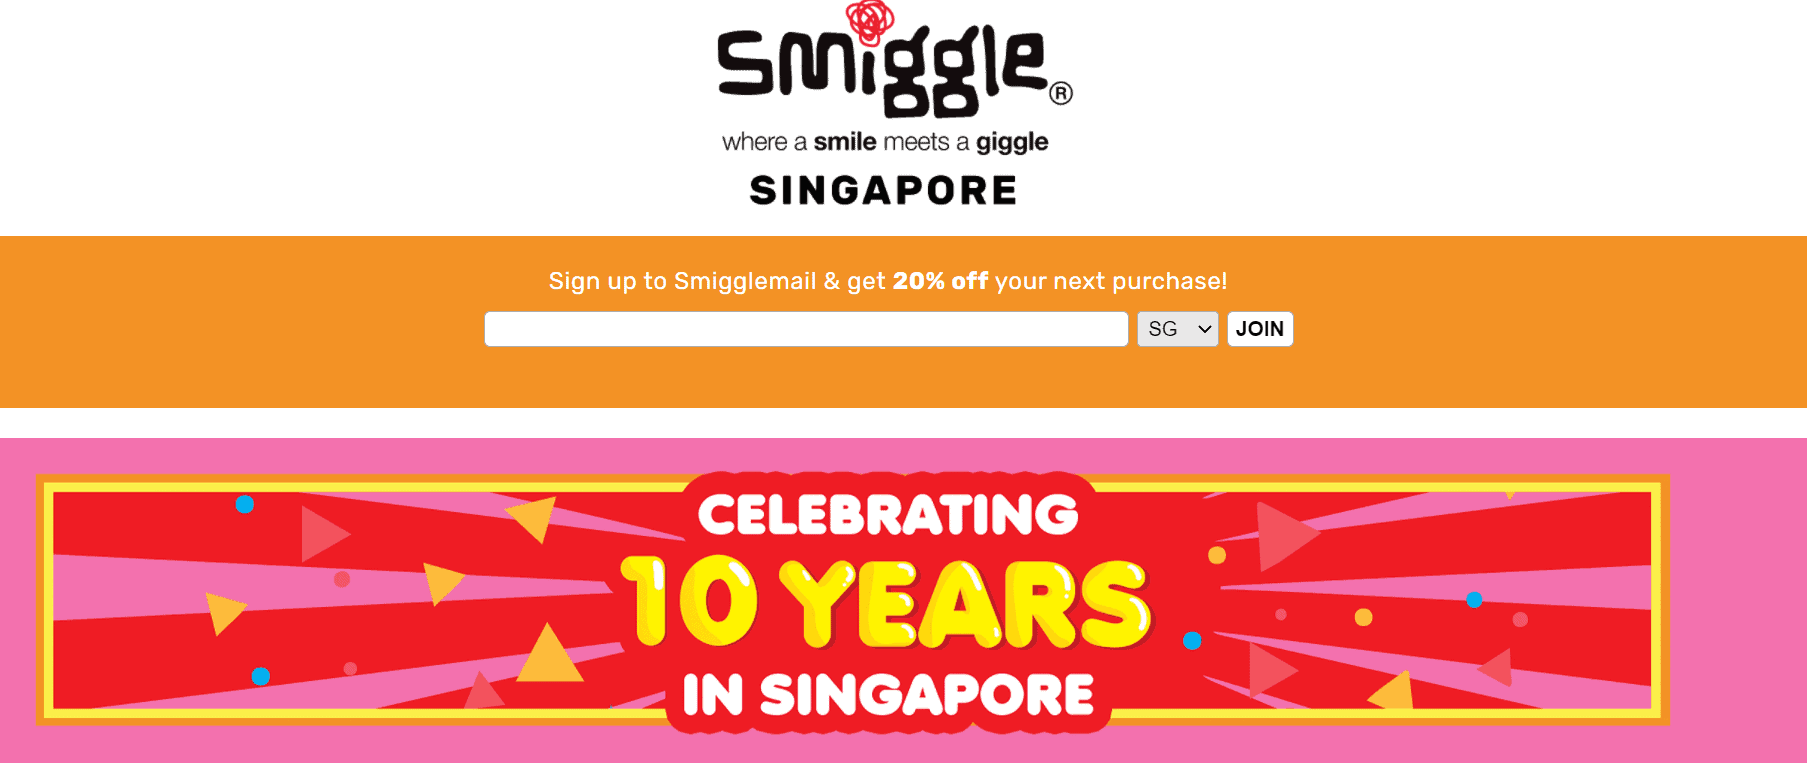 Smiggle is best 10 Stationery Shops In Singapore to buy online, office equipment, printer cartridge, paper products, desktop supplies, filing products,stationery supplier singapore,japanese stationery singapore,stationery shop near me